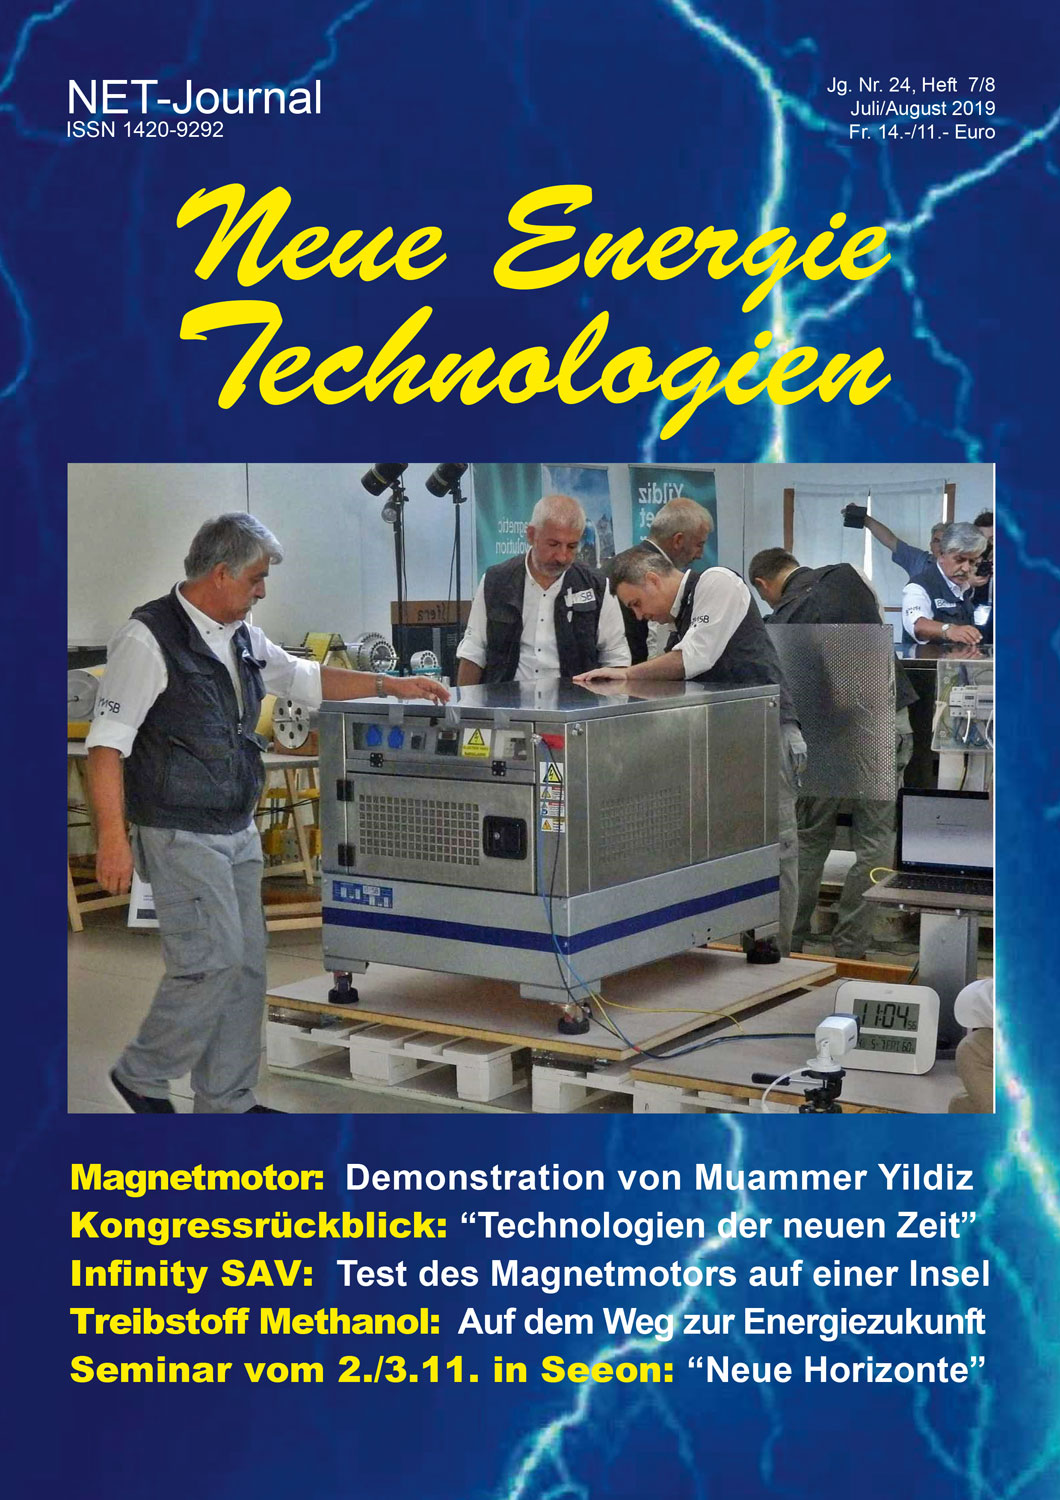 NET-Journal Ausgabe Juli/August 2019